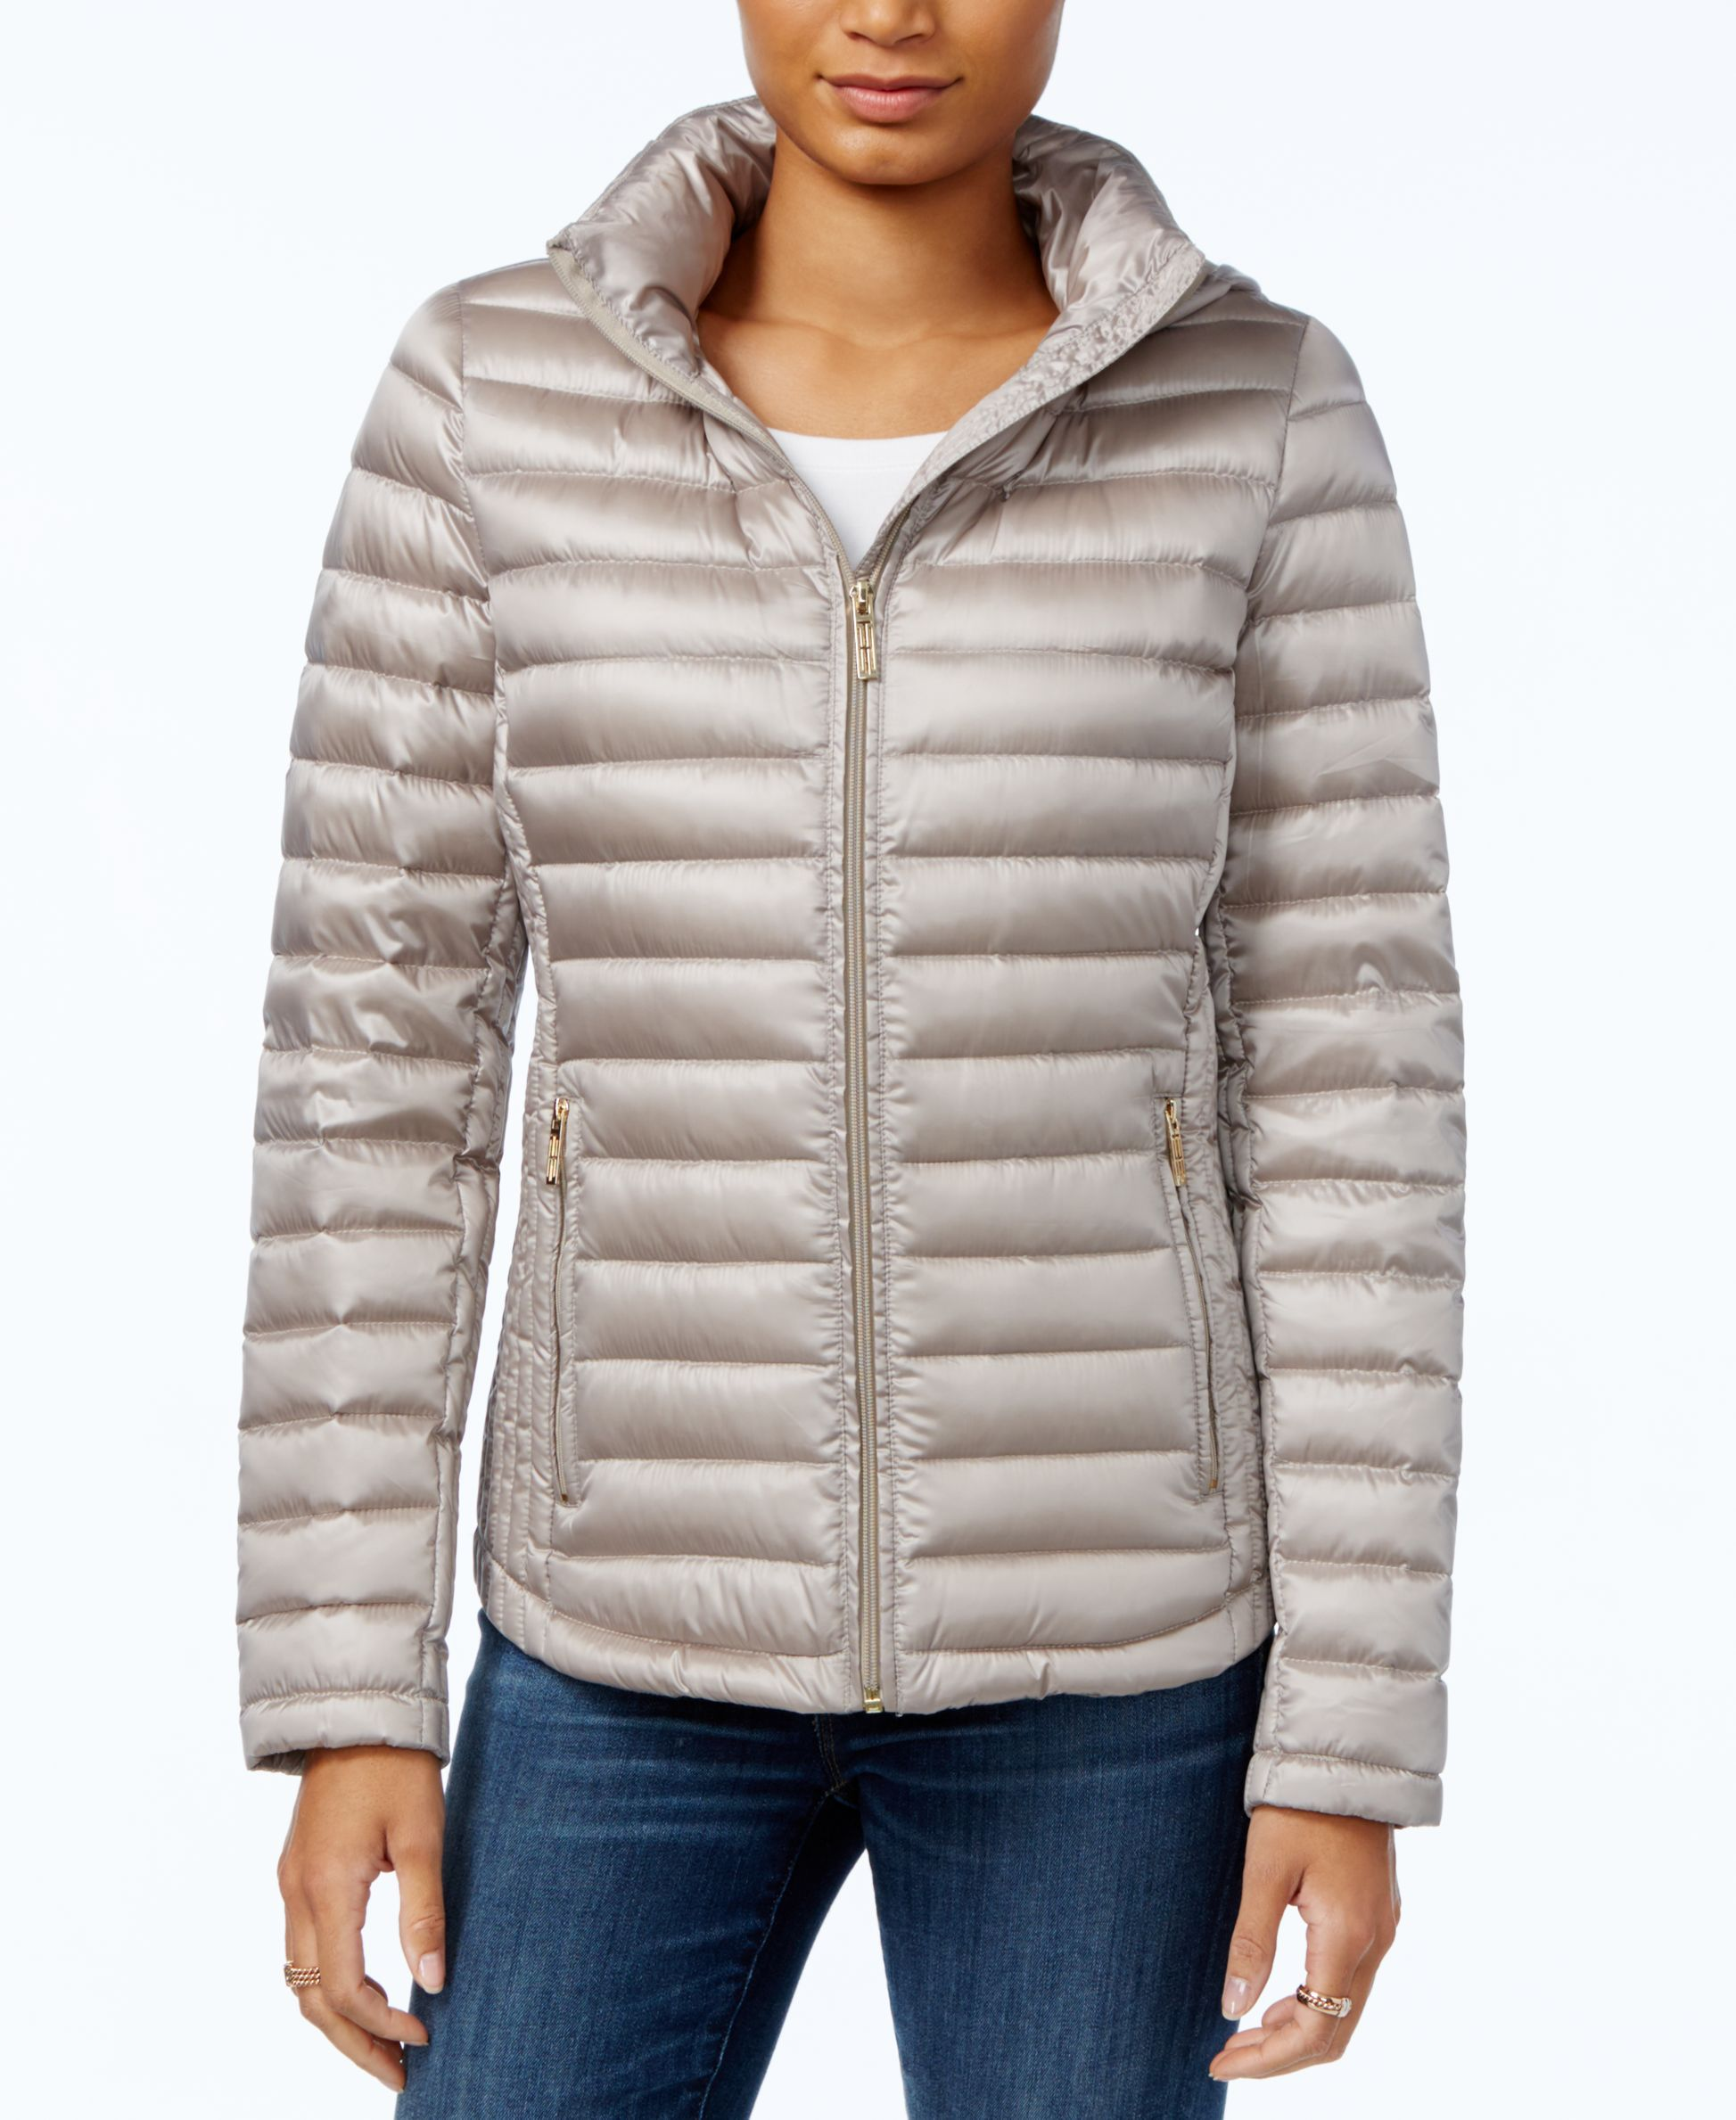 Tommy Hilfiger Hooded Puffer Jacket Only At Macy S Blazer Jackets For Women Puffer Jackets Jackets [ 2378 x 1947 Pixel ]